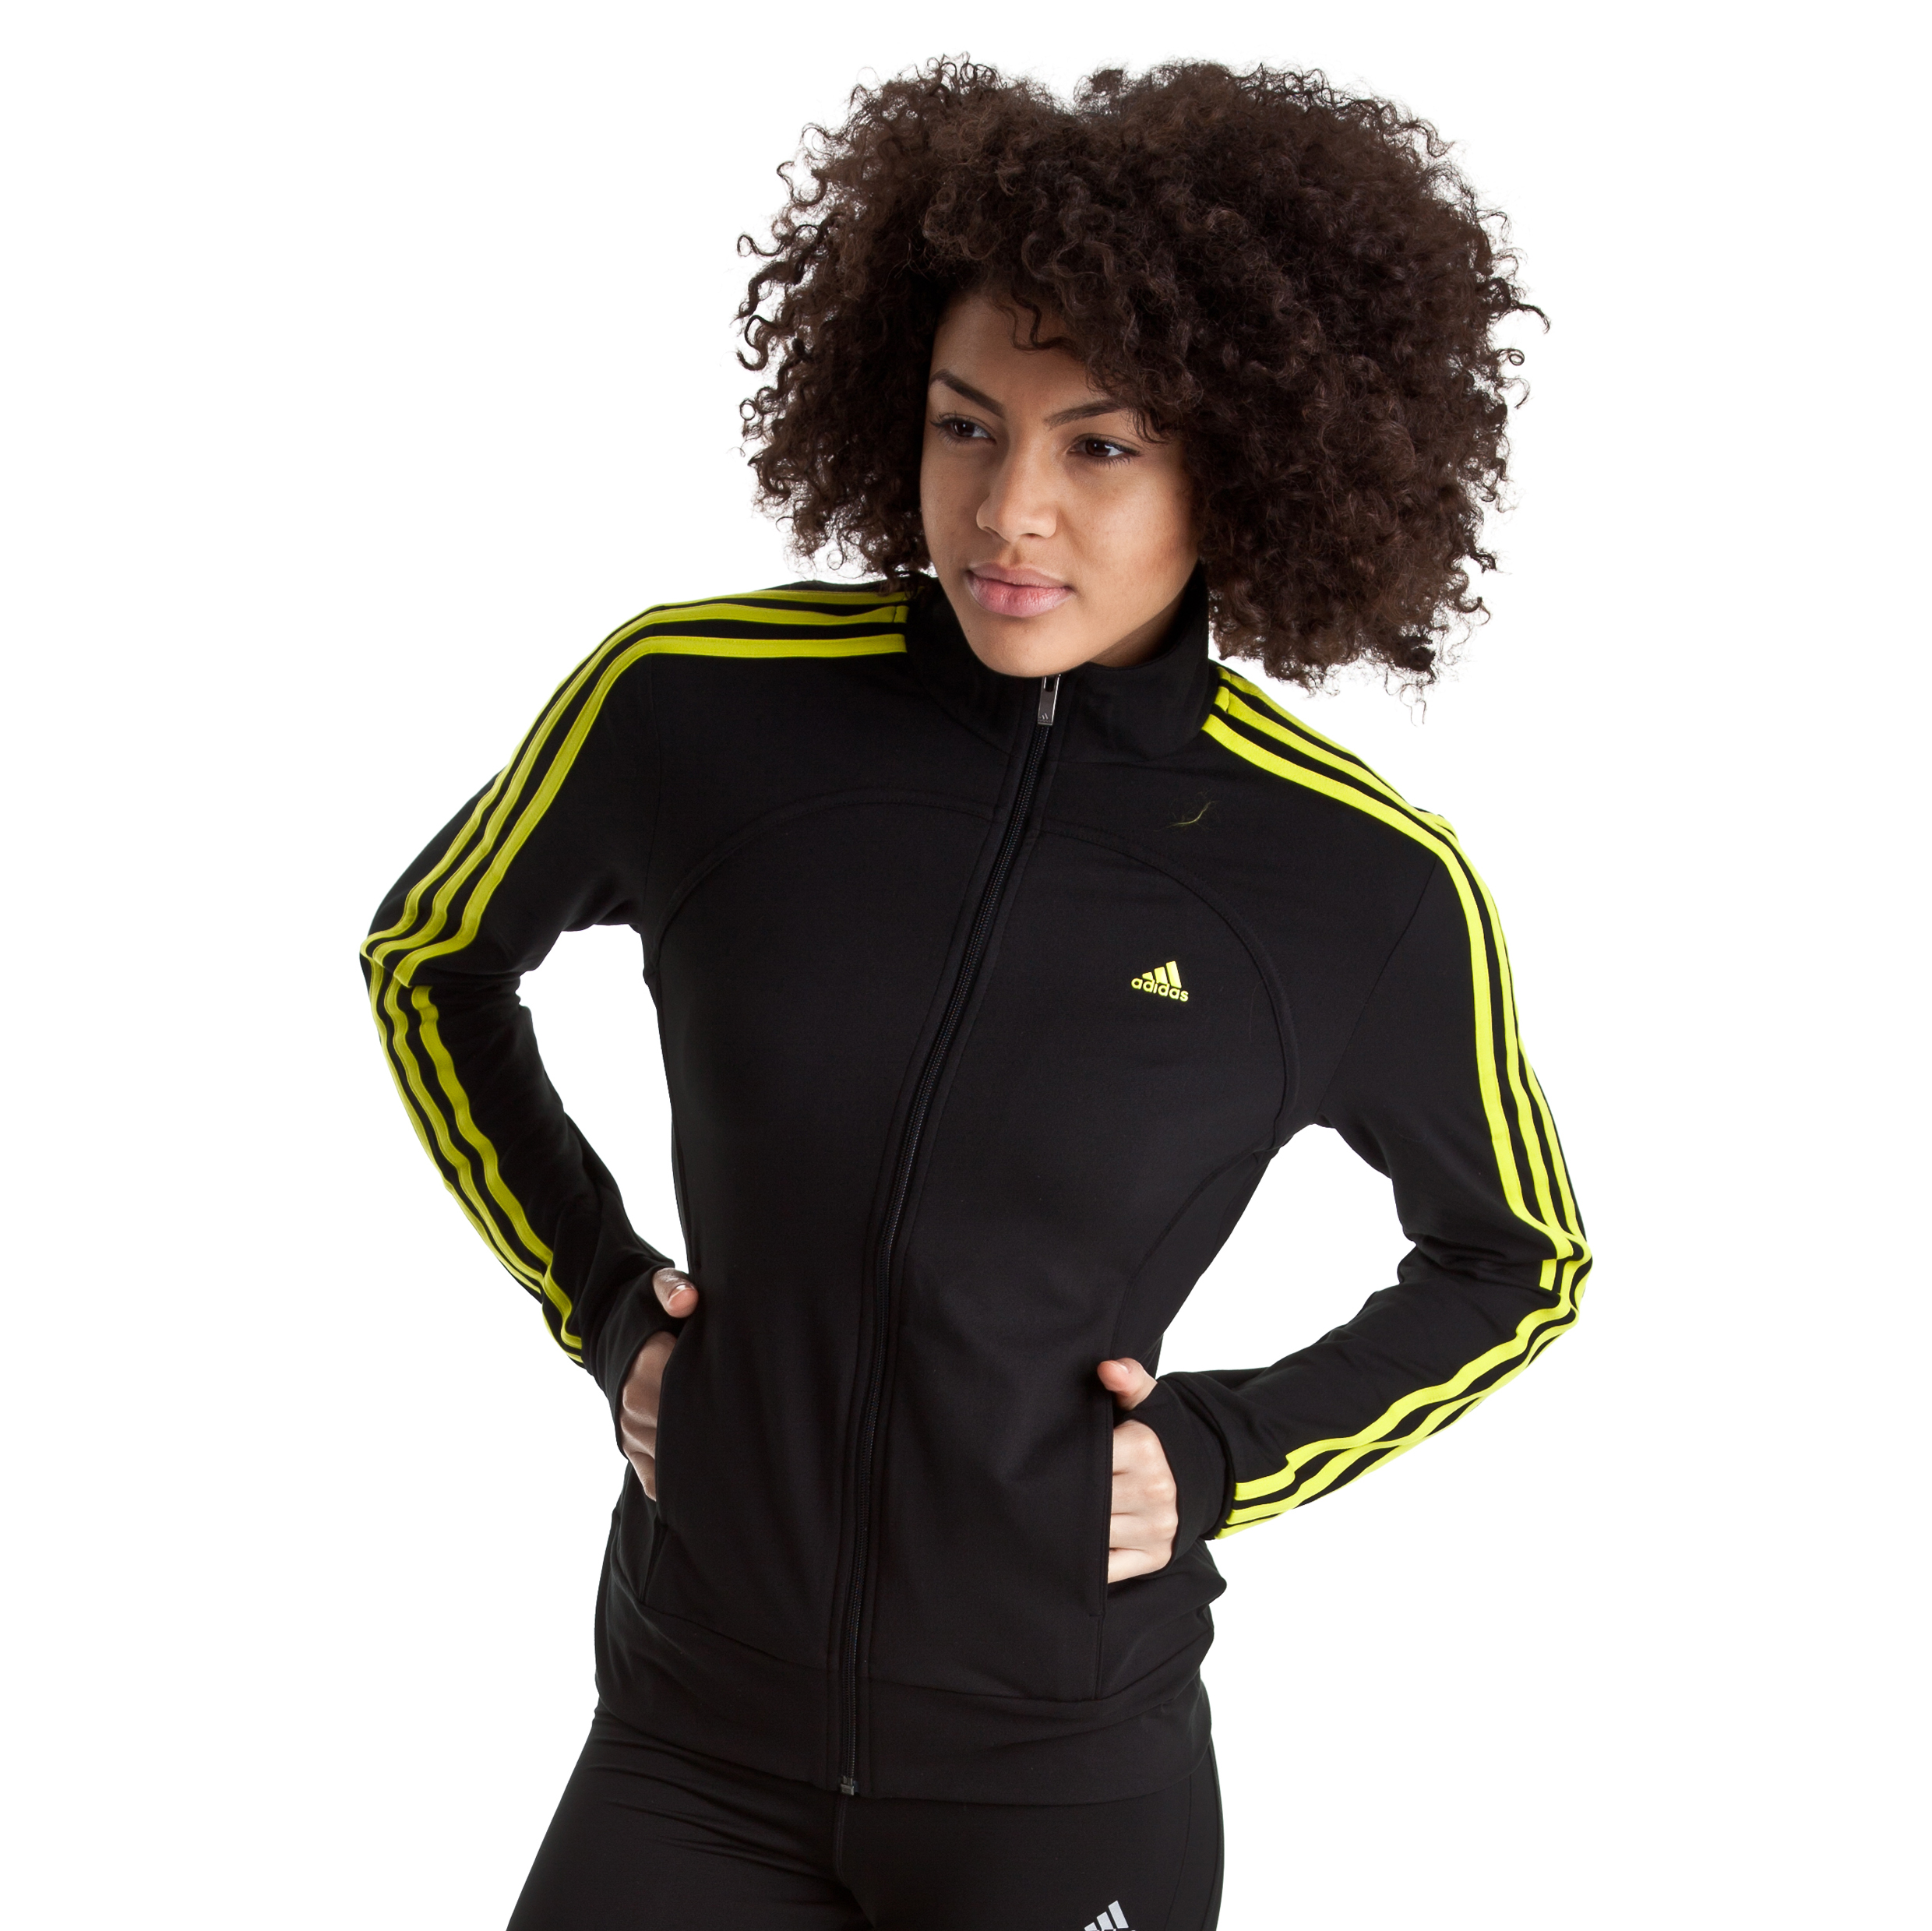 Adidas Multifunctional Essentials 3 Stripe Track Top - Black/Lab Lime - Womens